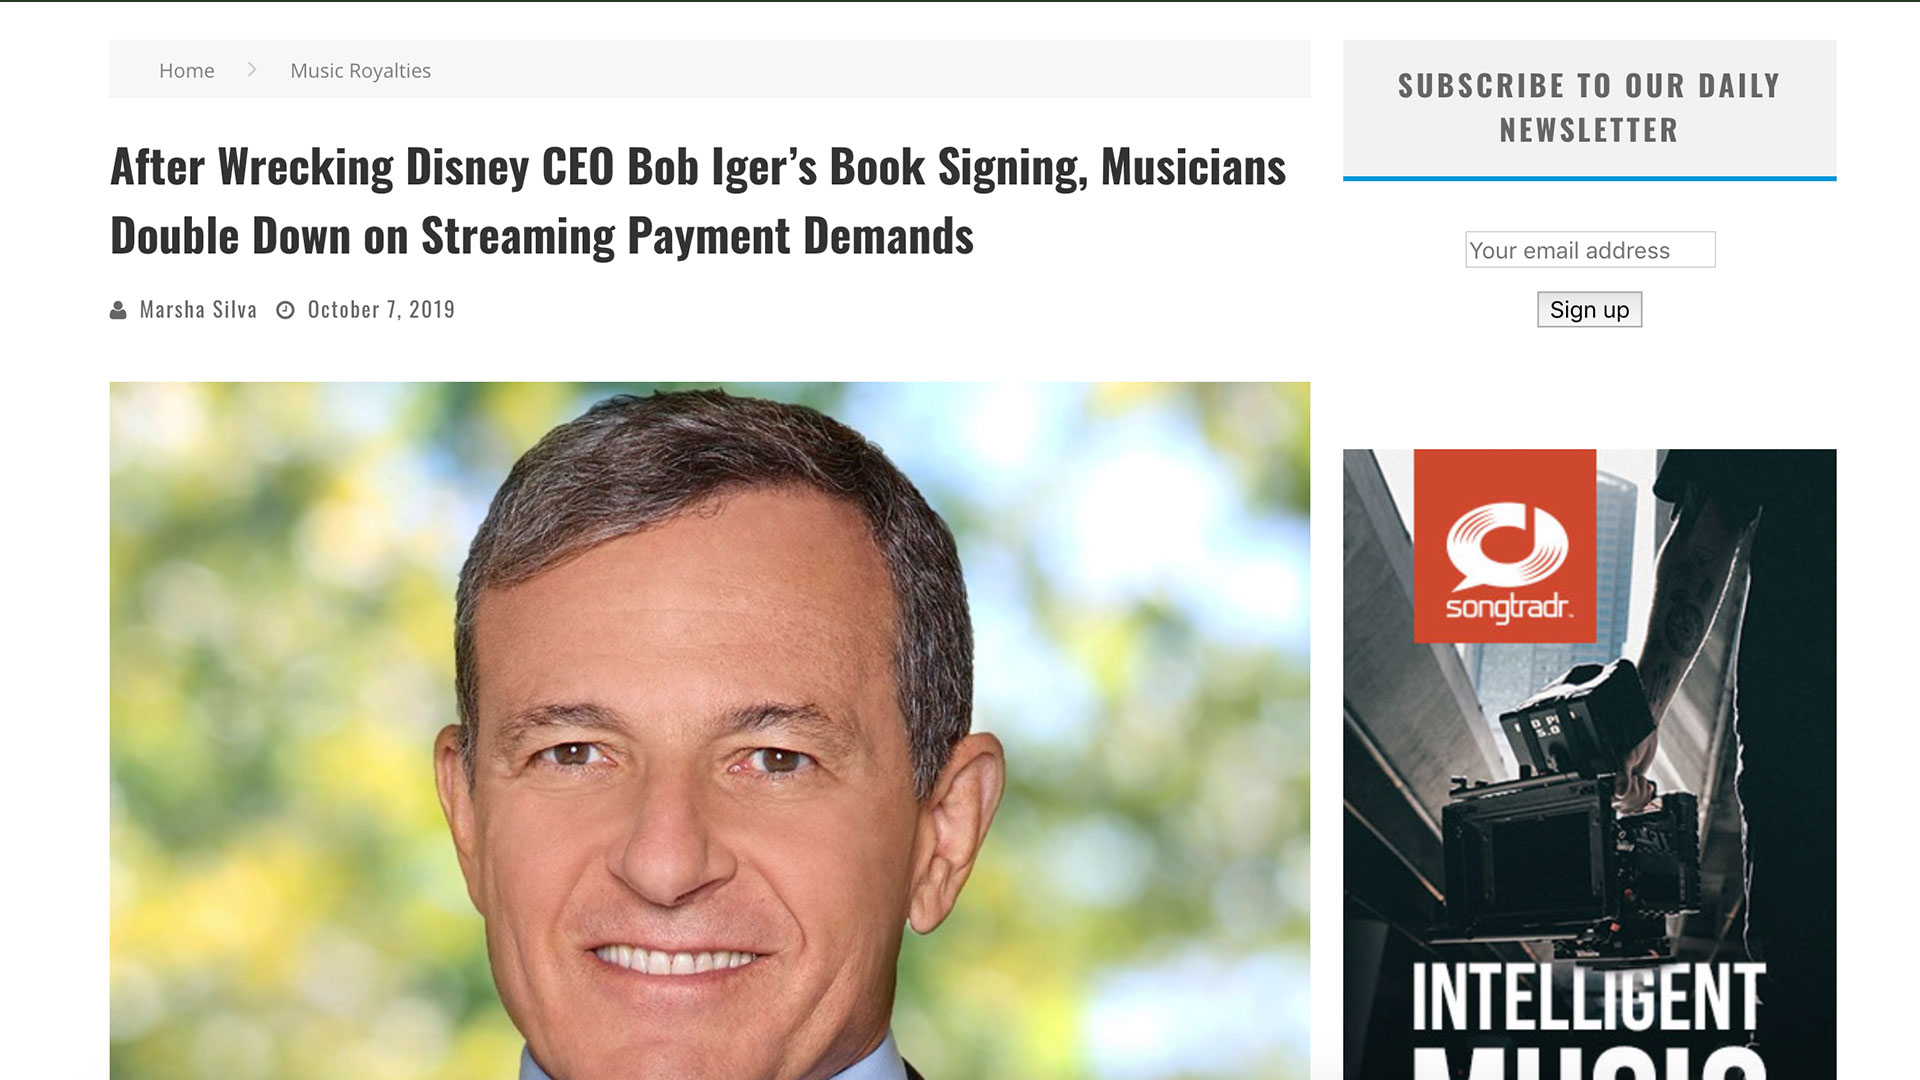 Fairness Rocks News After Wrecking Disney CEO Bob Iger's Book Signing, Musicians Double Down on Streaming Payment Demands